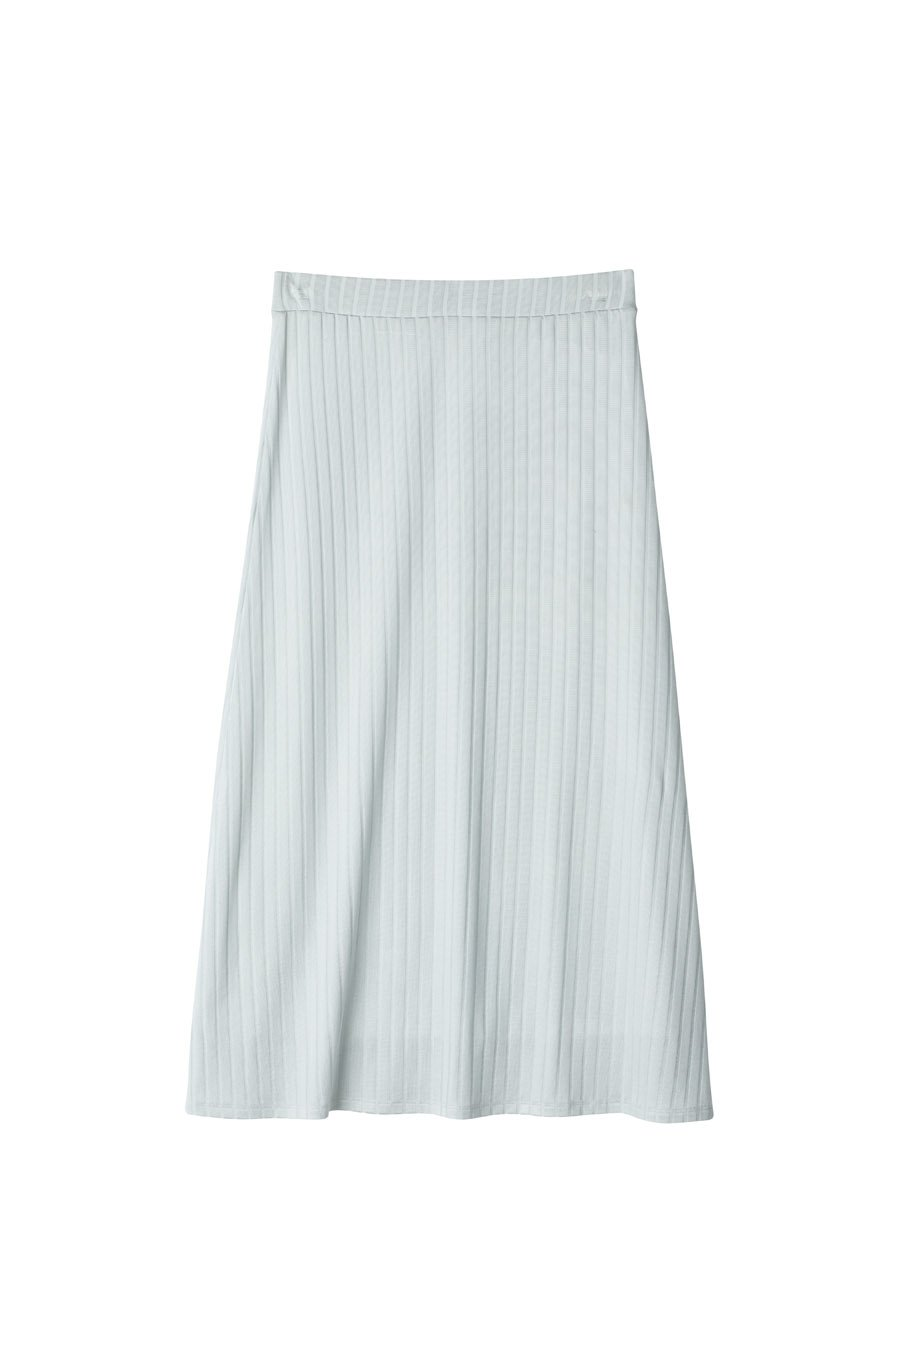 PHILLY SKIRT - LIGHT BLUE Skirt Stylein